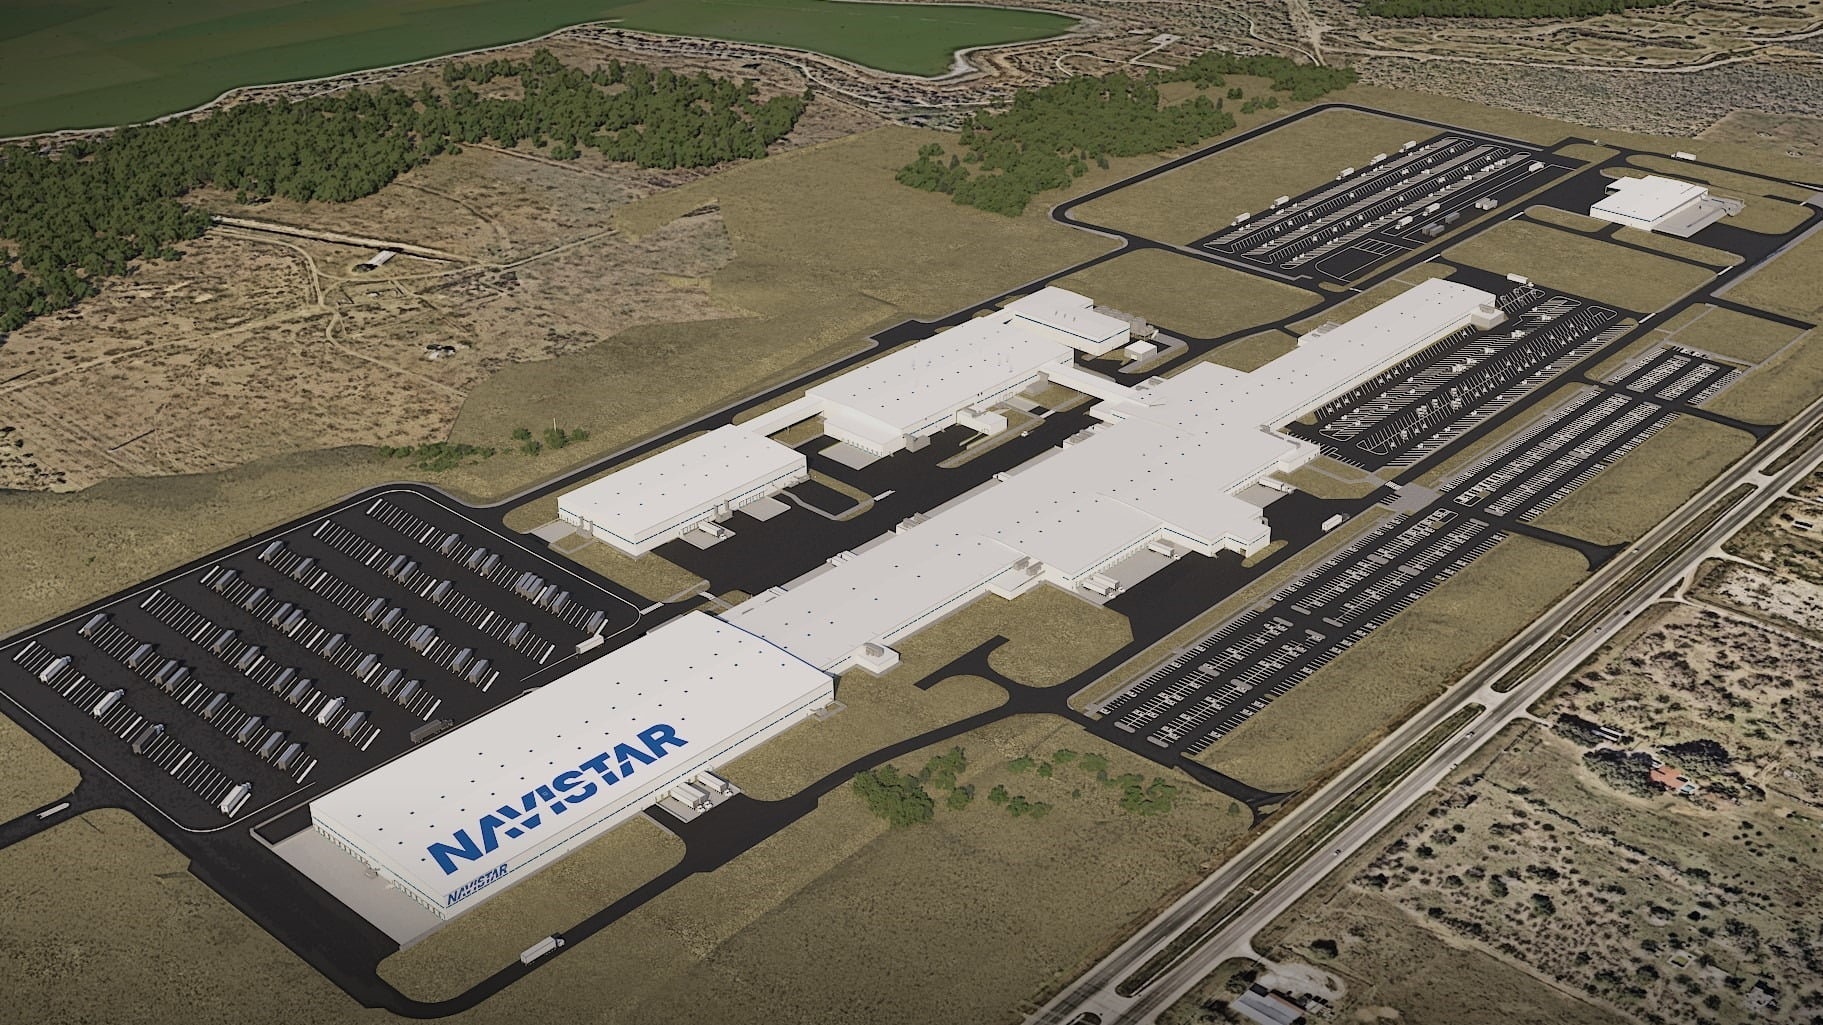 aem0221truck10: Navistars new assembly plant in San Antonio will feature cutting-edge Industry 4.0 technology.